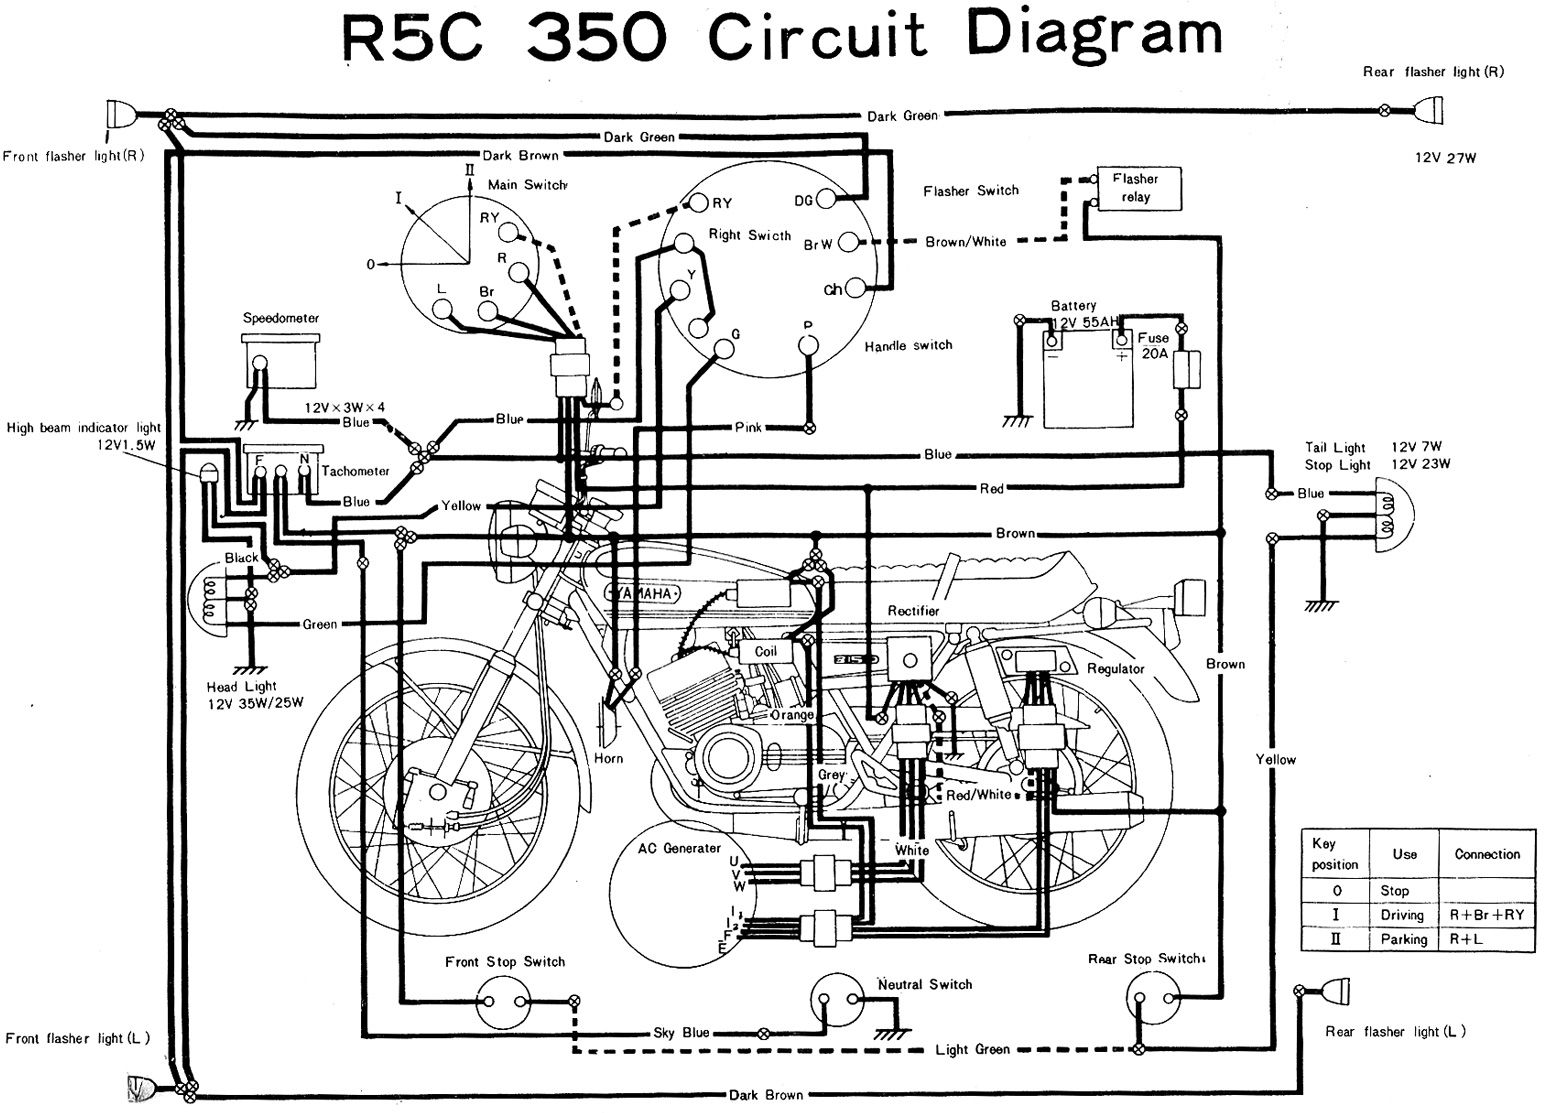 [SCHEMATICS_48EU]  1B6 Zero Electric Motorcycle Wiring Diagram | Wiring Library | Zero Electric Motorcycle Wiring Diagram |  | Wiring Library